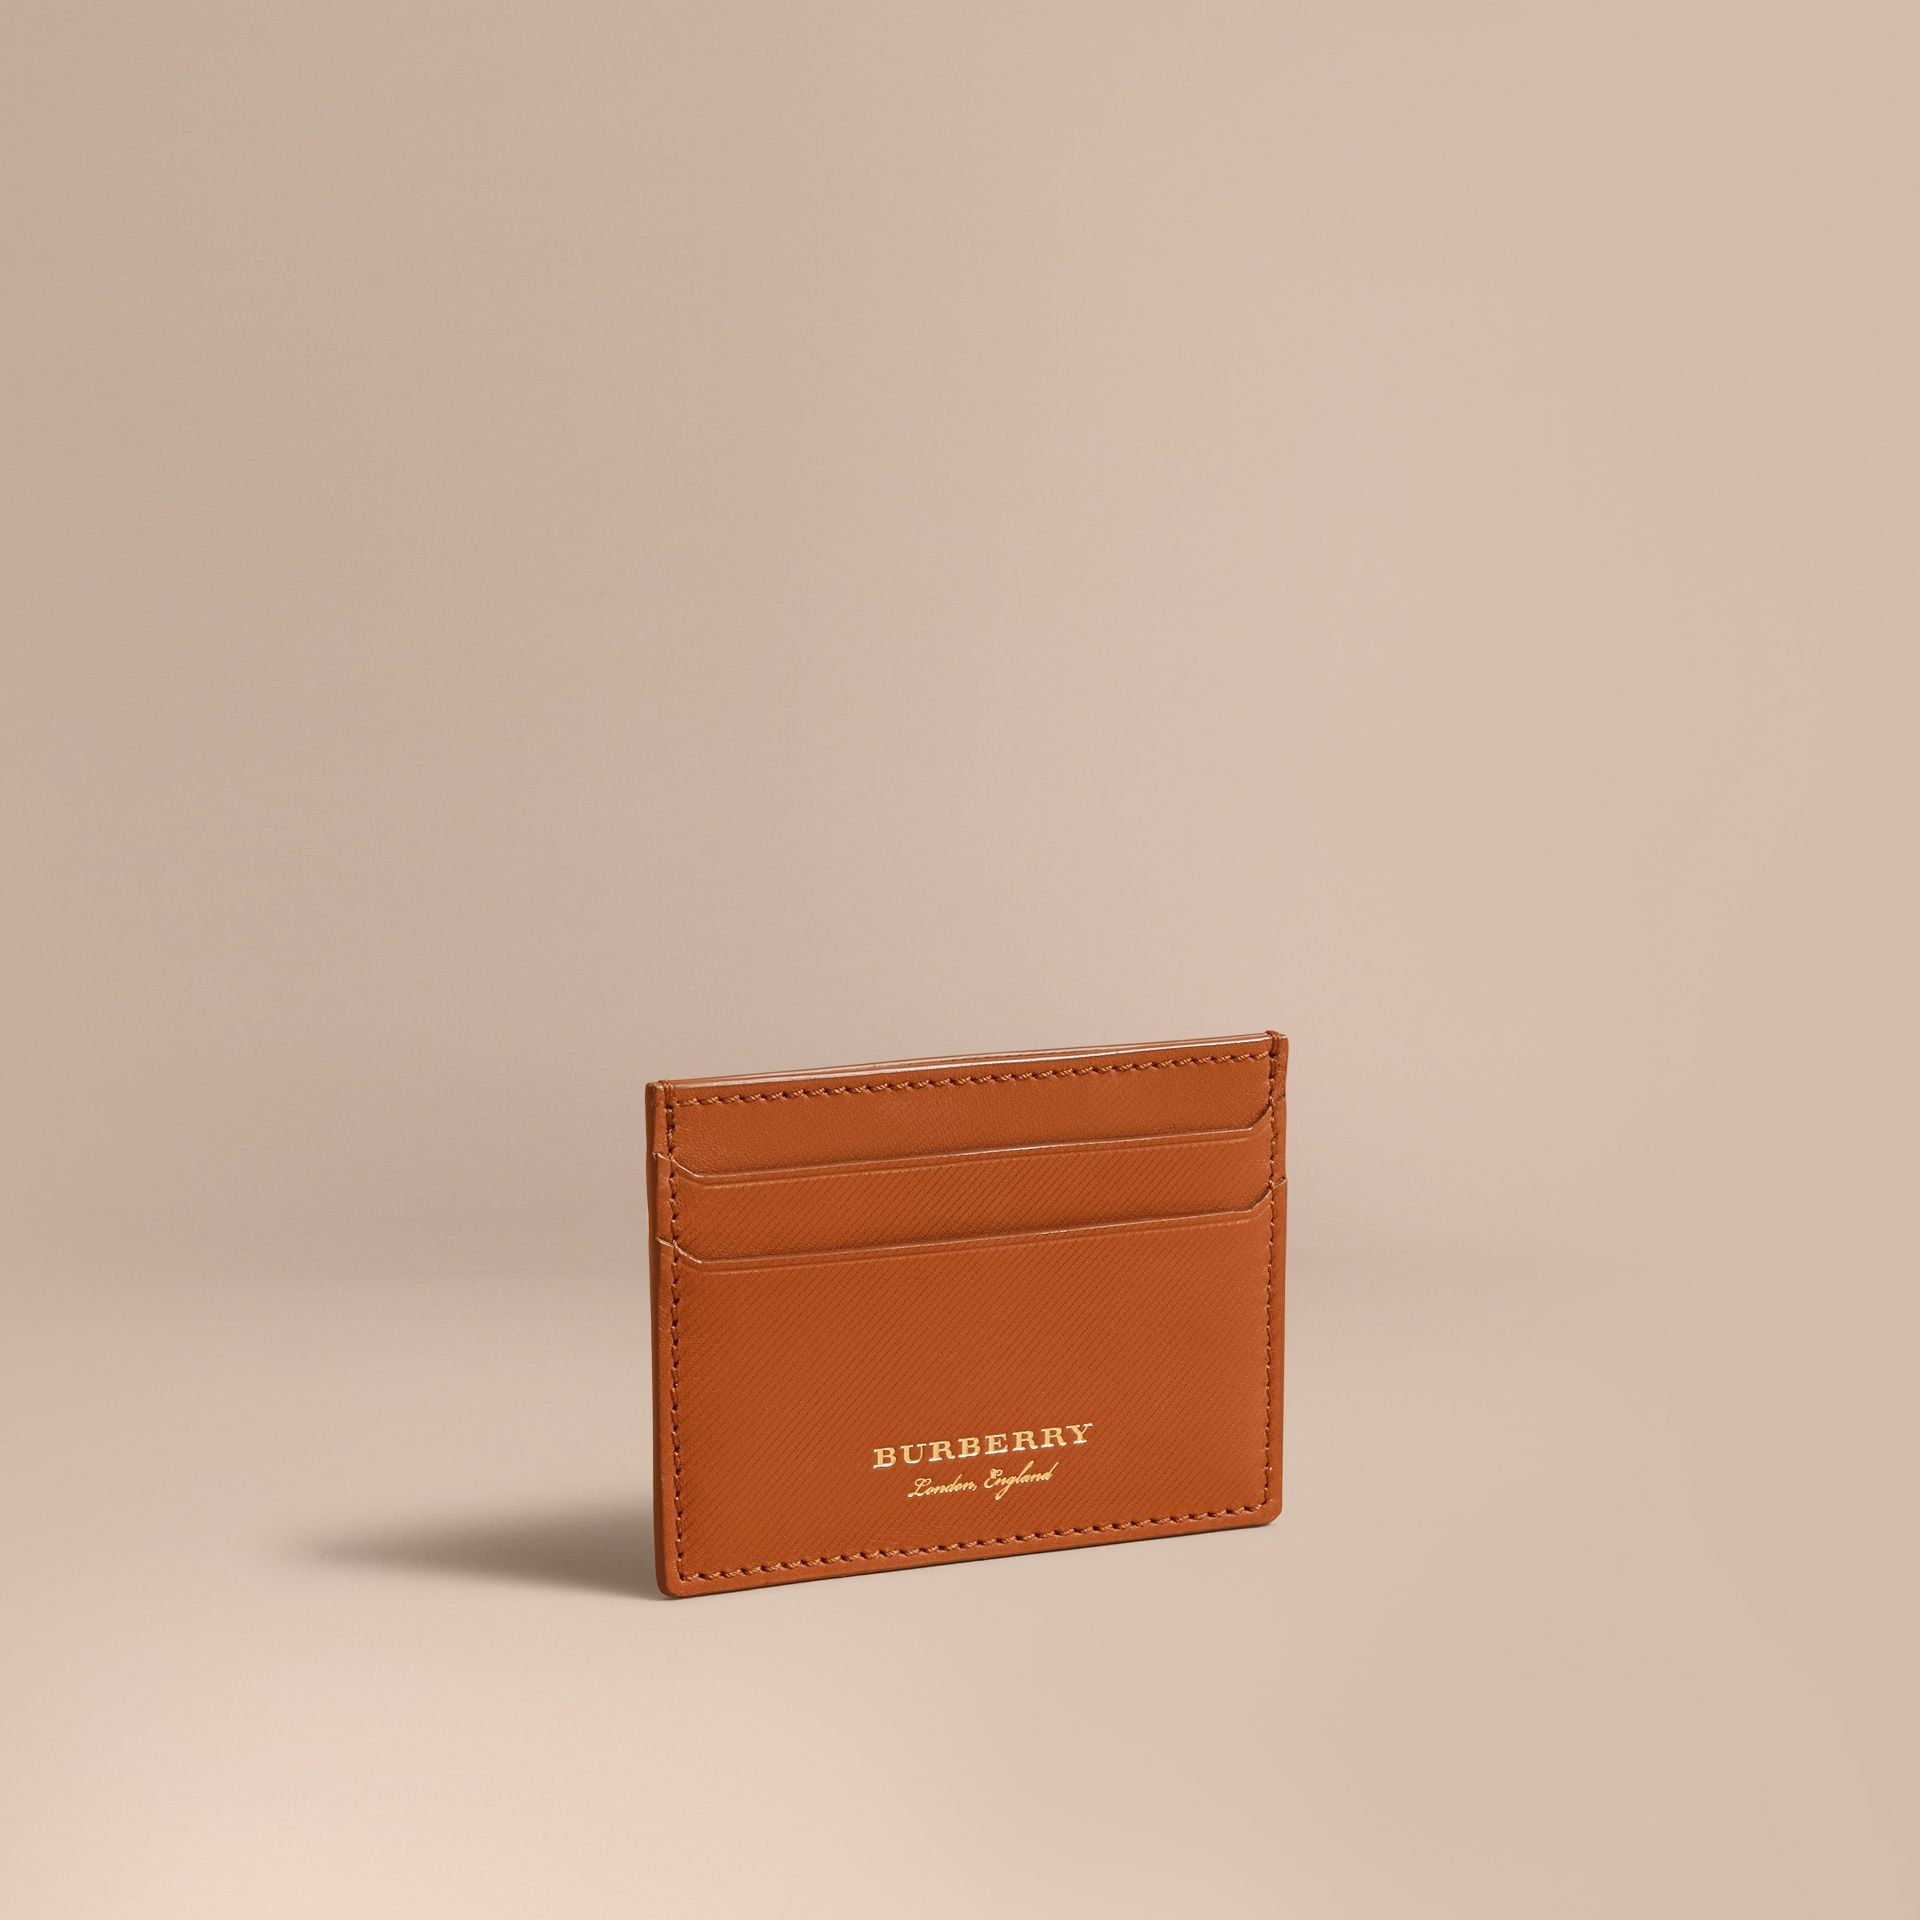 Trench Leather Card Case in Tan - Men | Burberry - gallery image 1